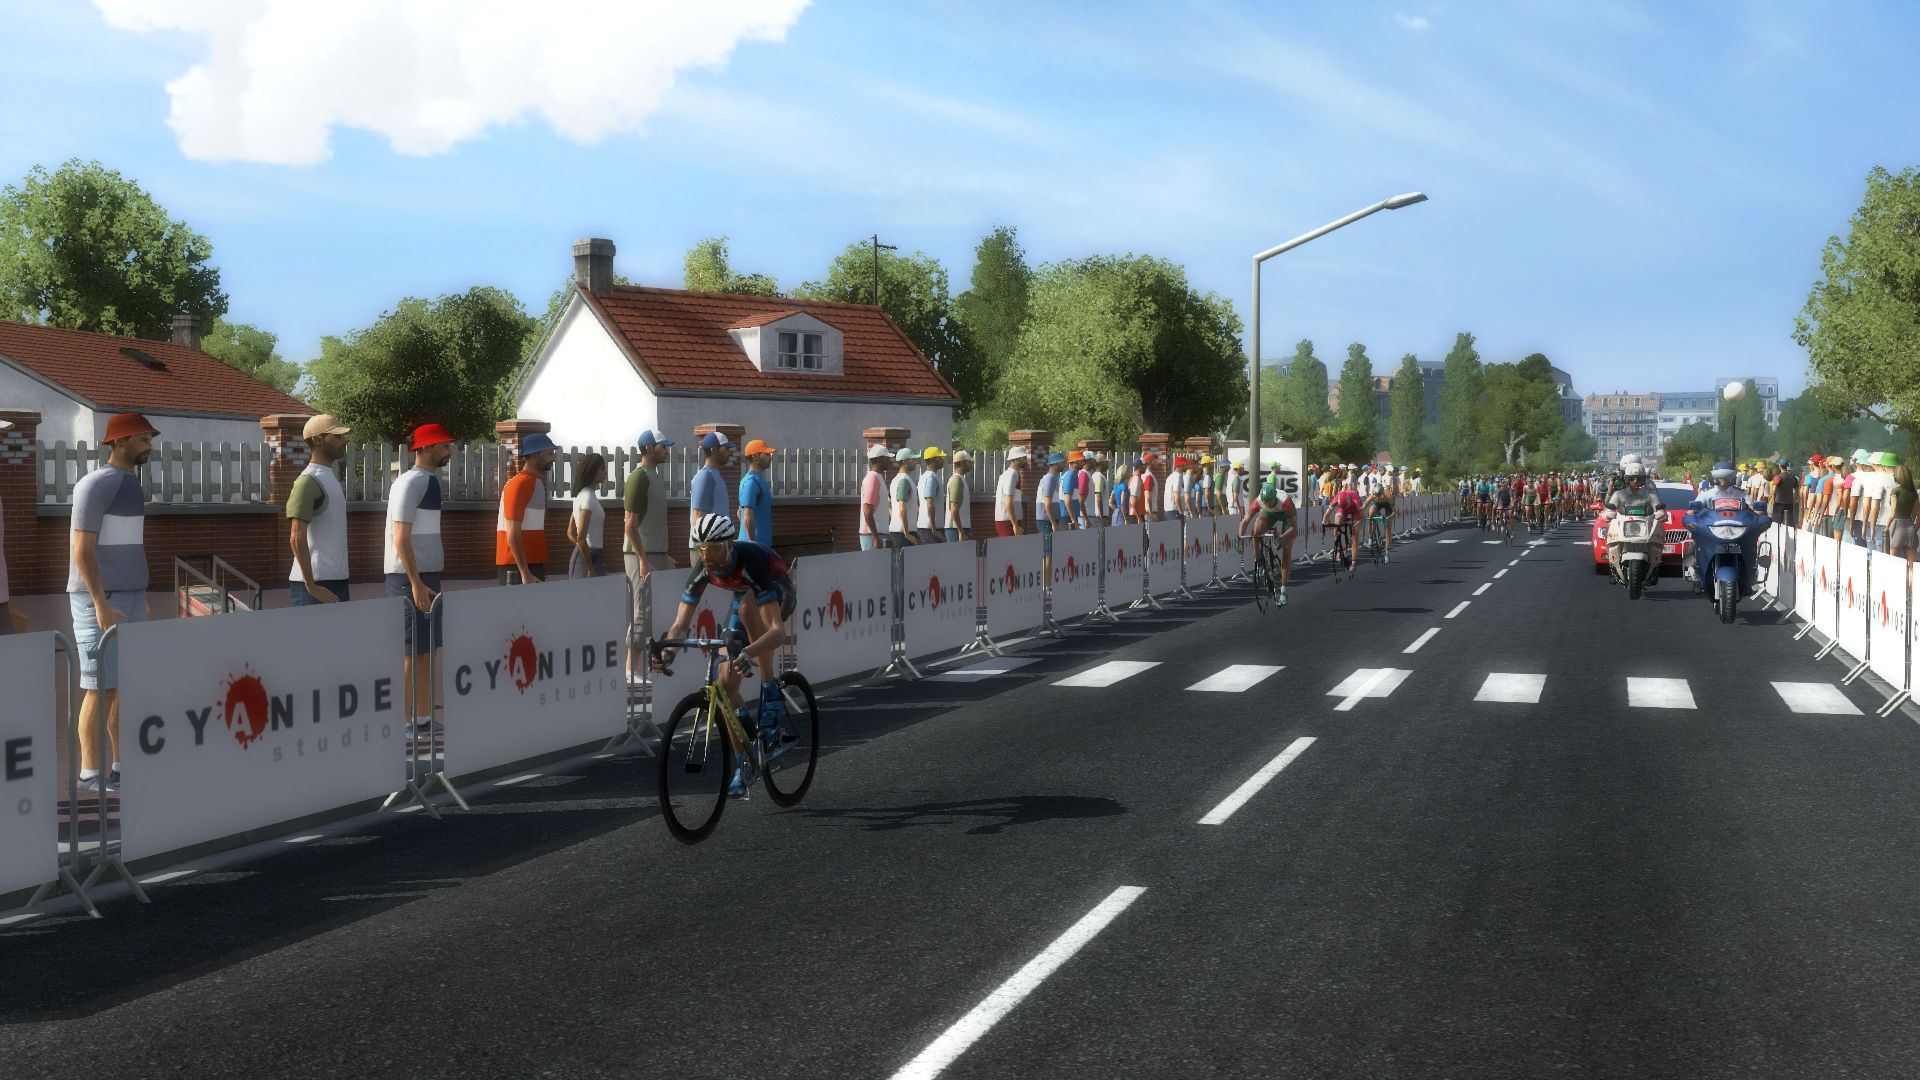 pcmdaily.com/images/mg/2019/Races/HC/Slovenie/mg19_slo_s02_02.jpg